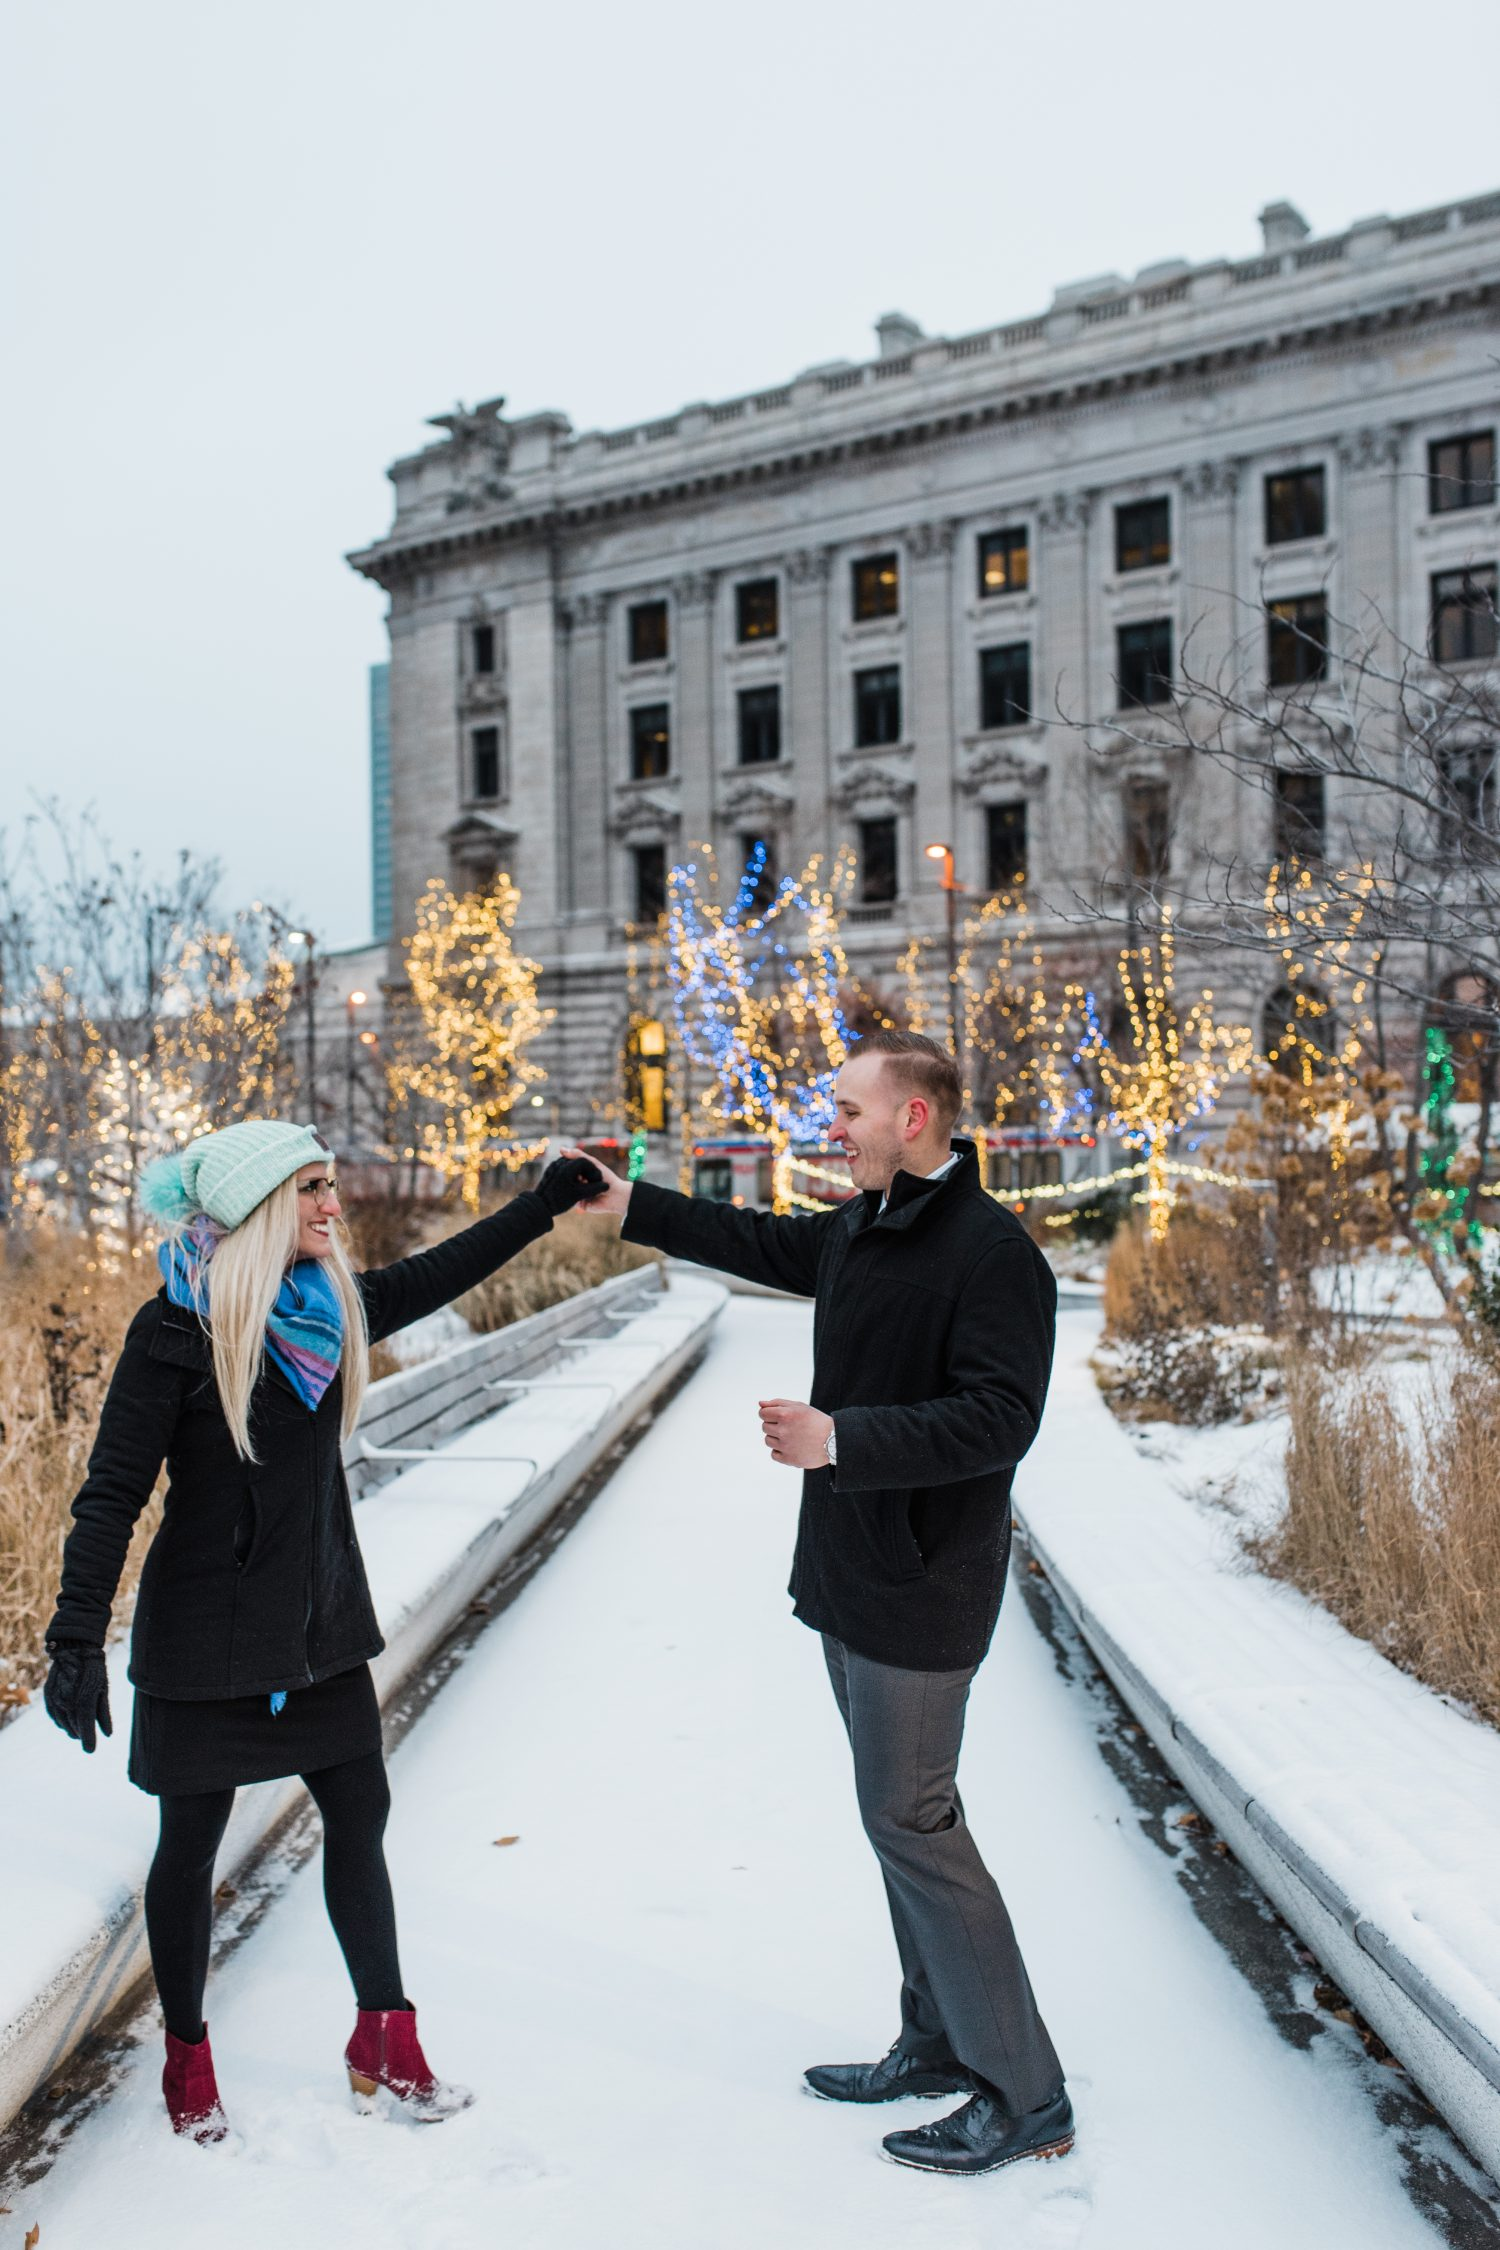 Easterday Creative, Adventurous Wedding Photographer and Storyteller, Cleveland Winter Wonderland Engagement Session